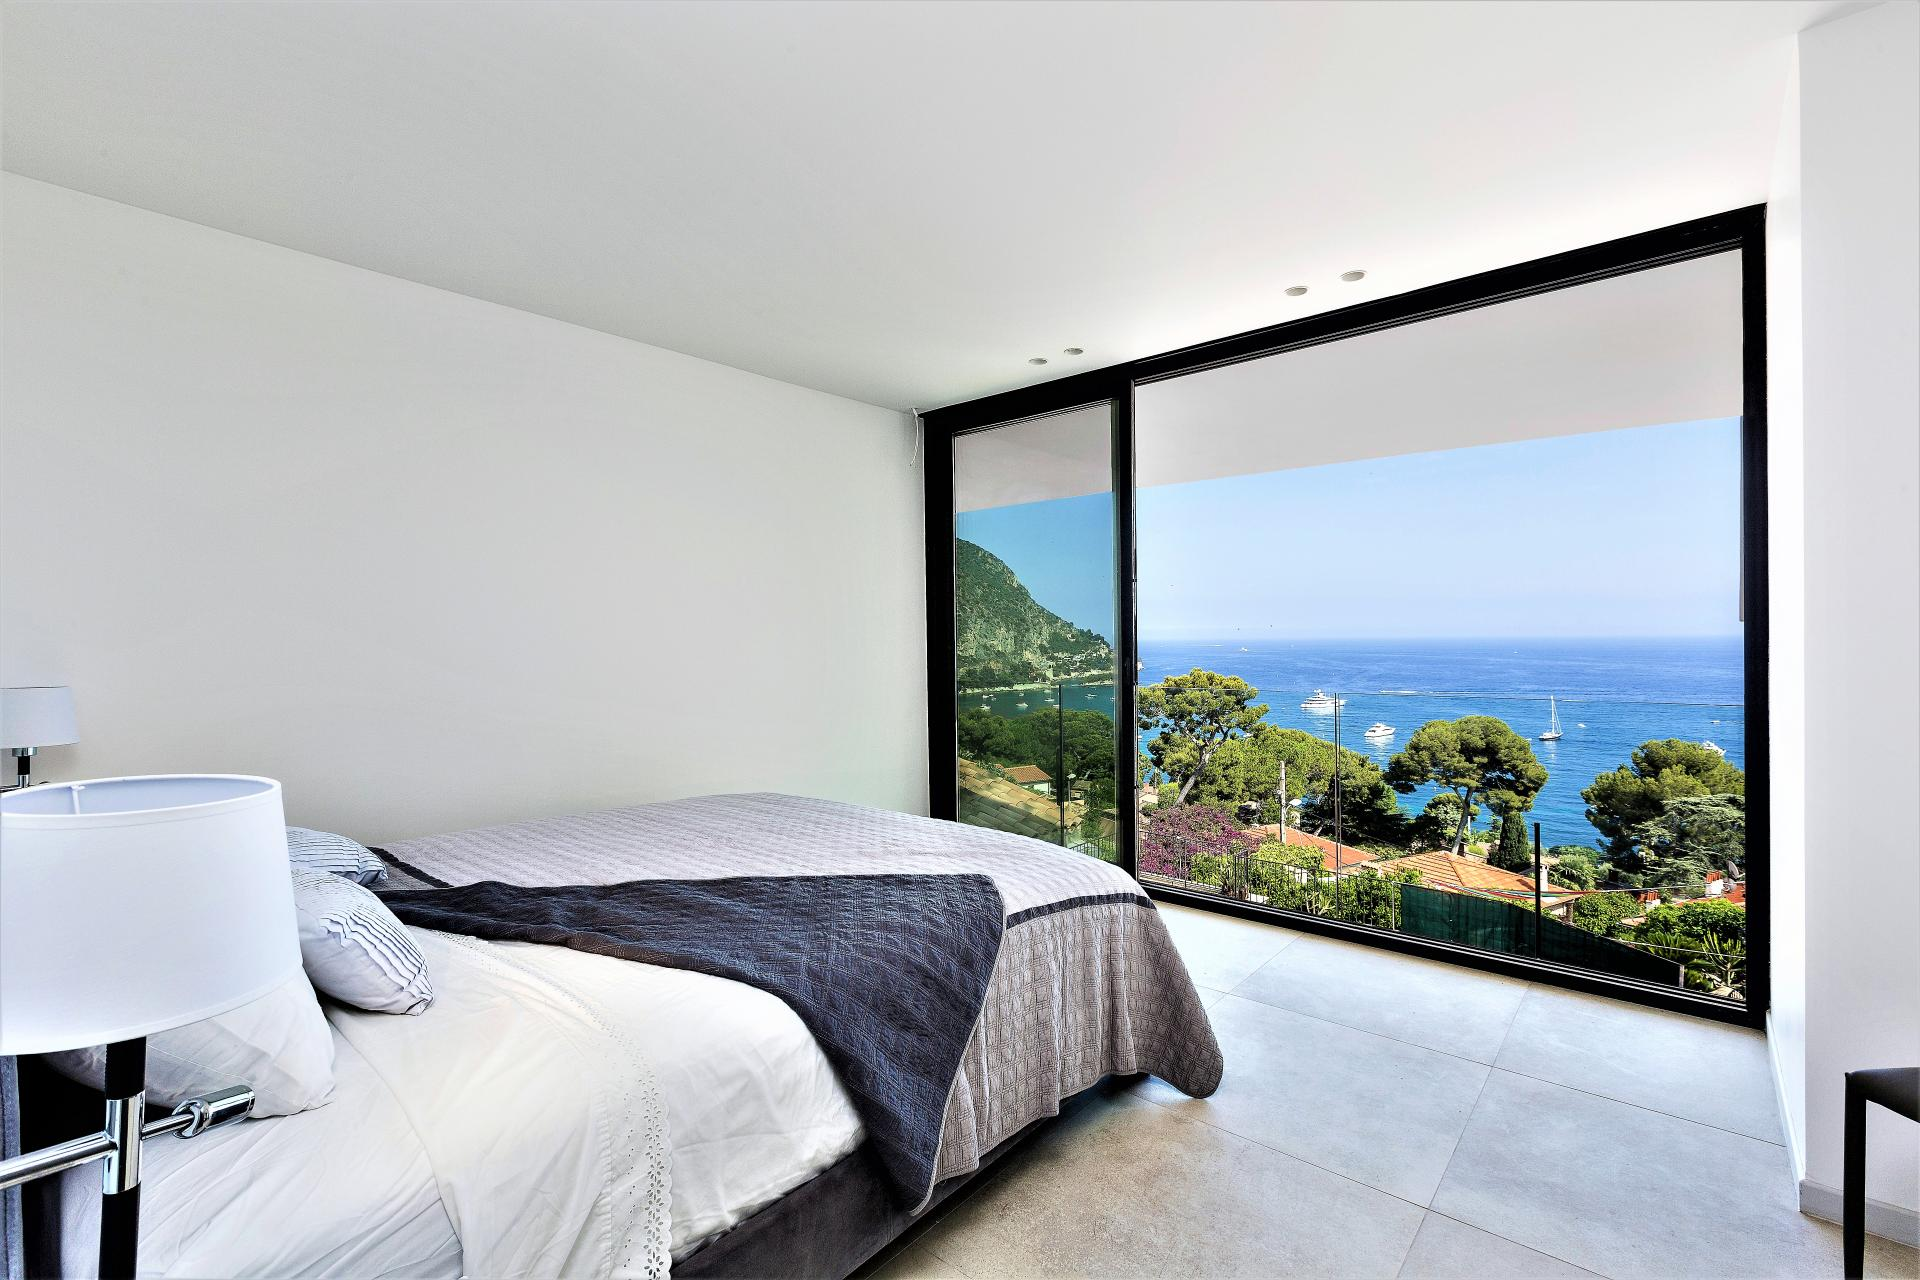 AMAZING SEA VIEWS FROM A BEDROOM IN A HOLIDAY RENTAL IN EZE